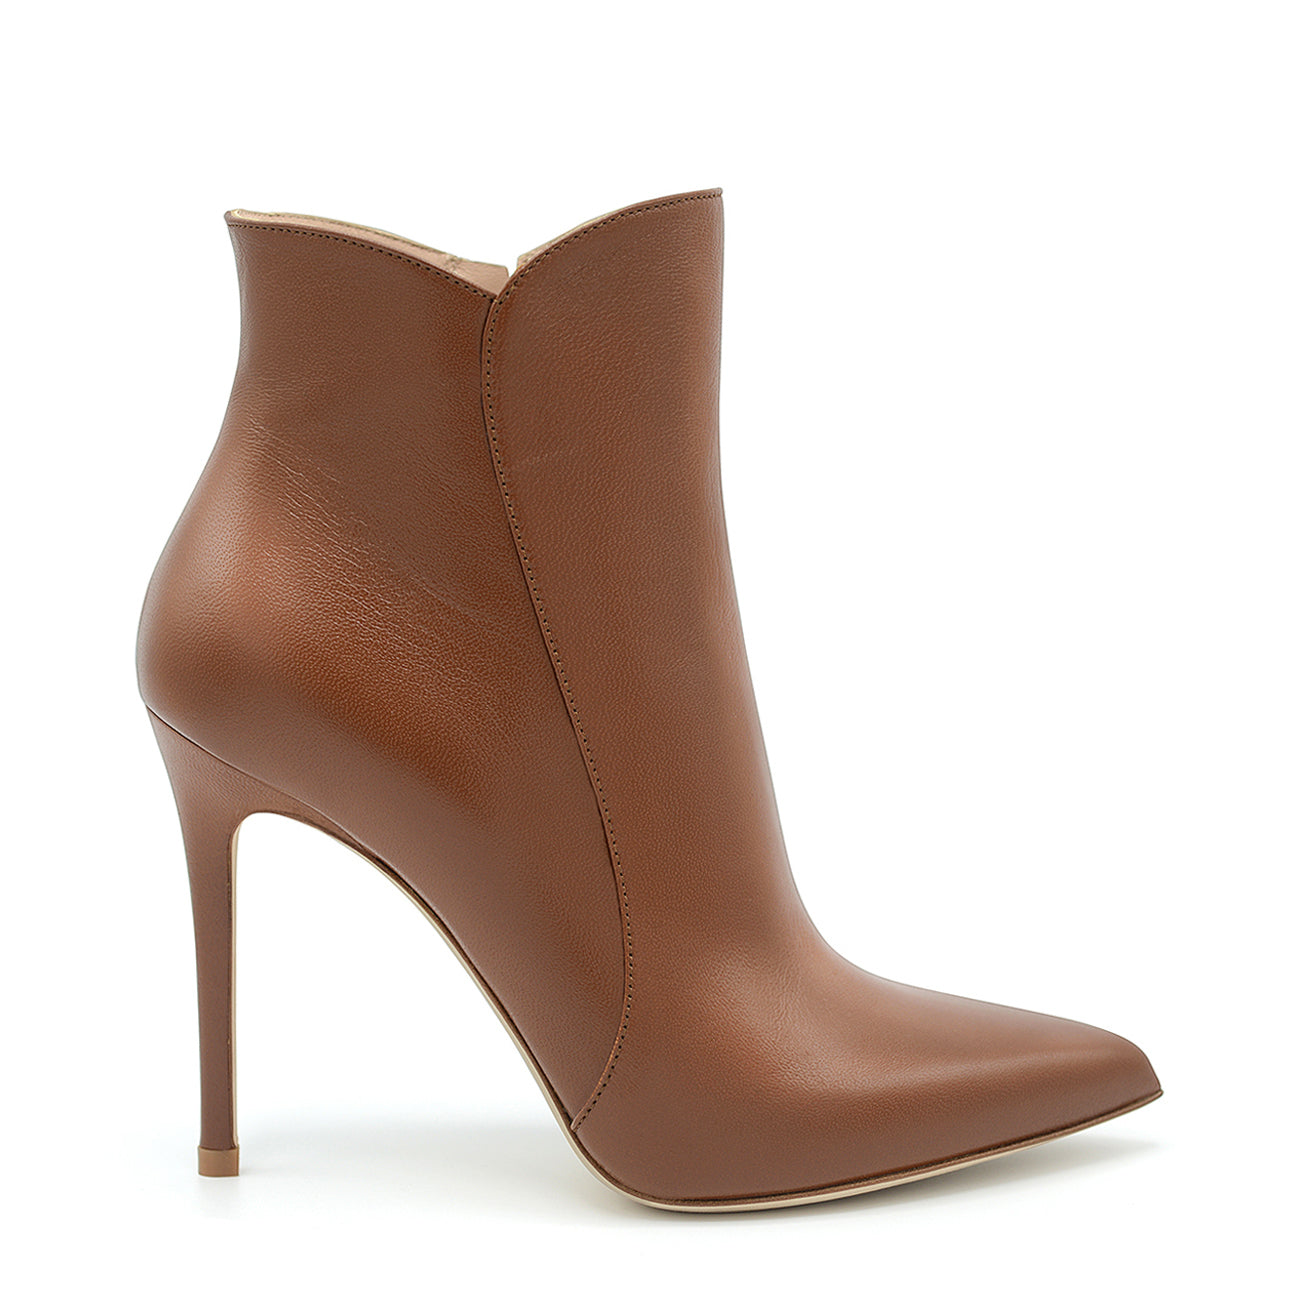 Margy. <br> High-heel fox brown nappa leather ankle boots